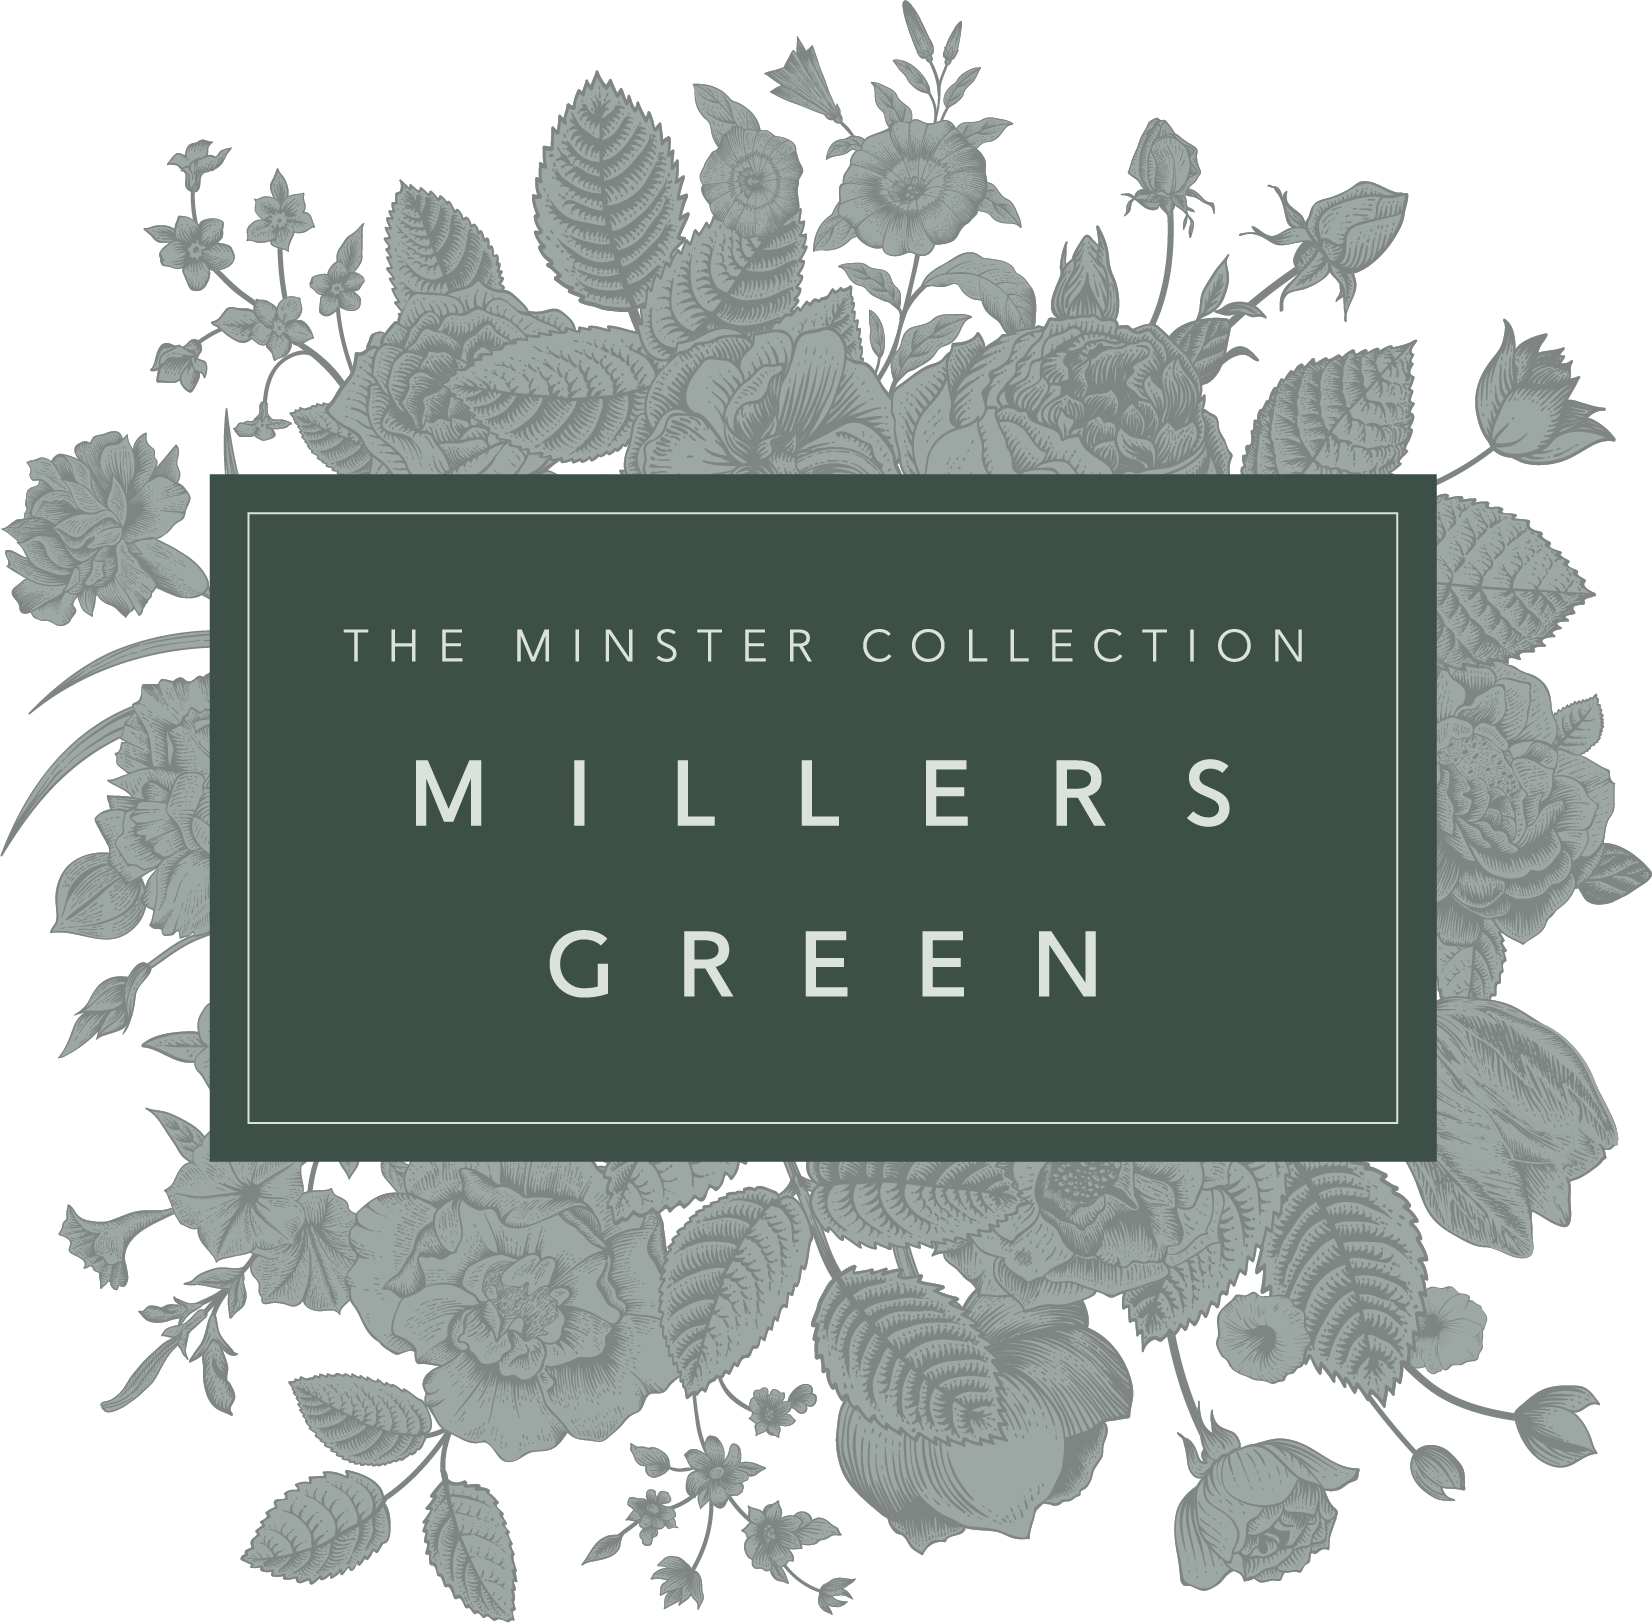 millers-green-logo-01@2x